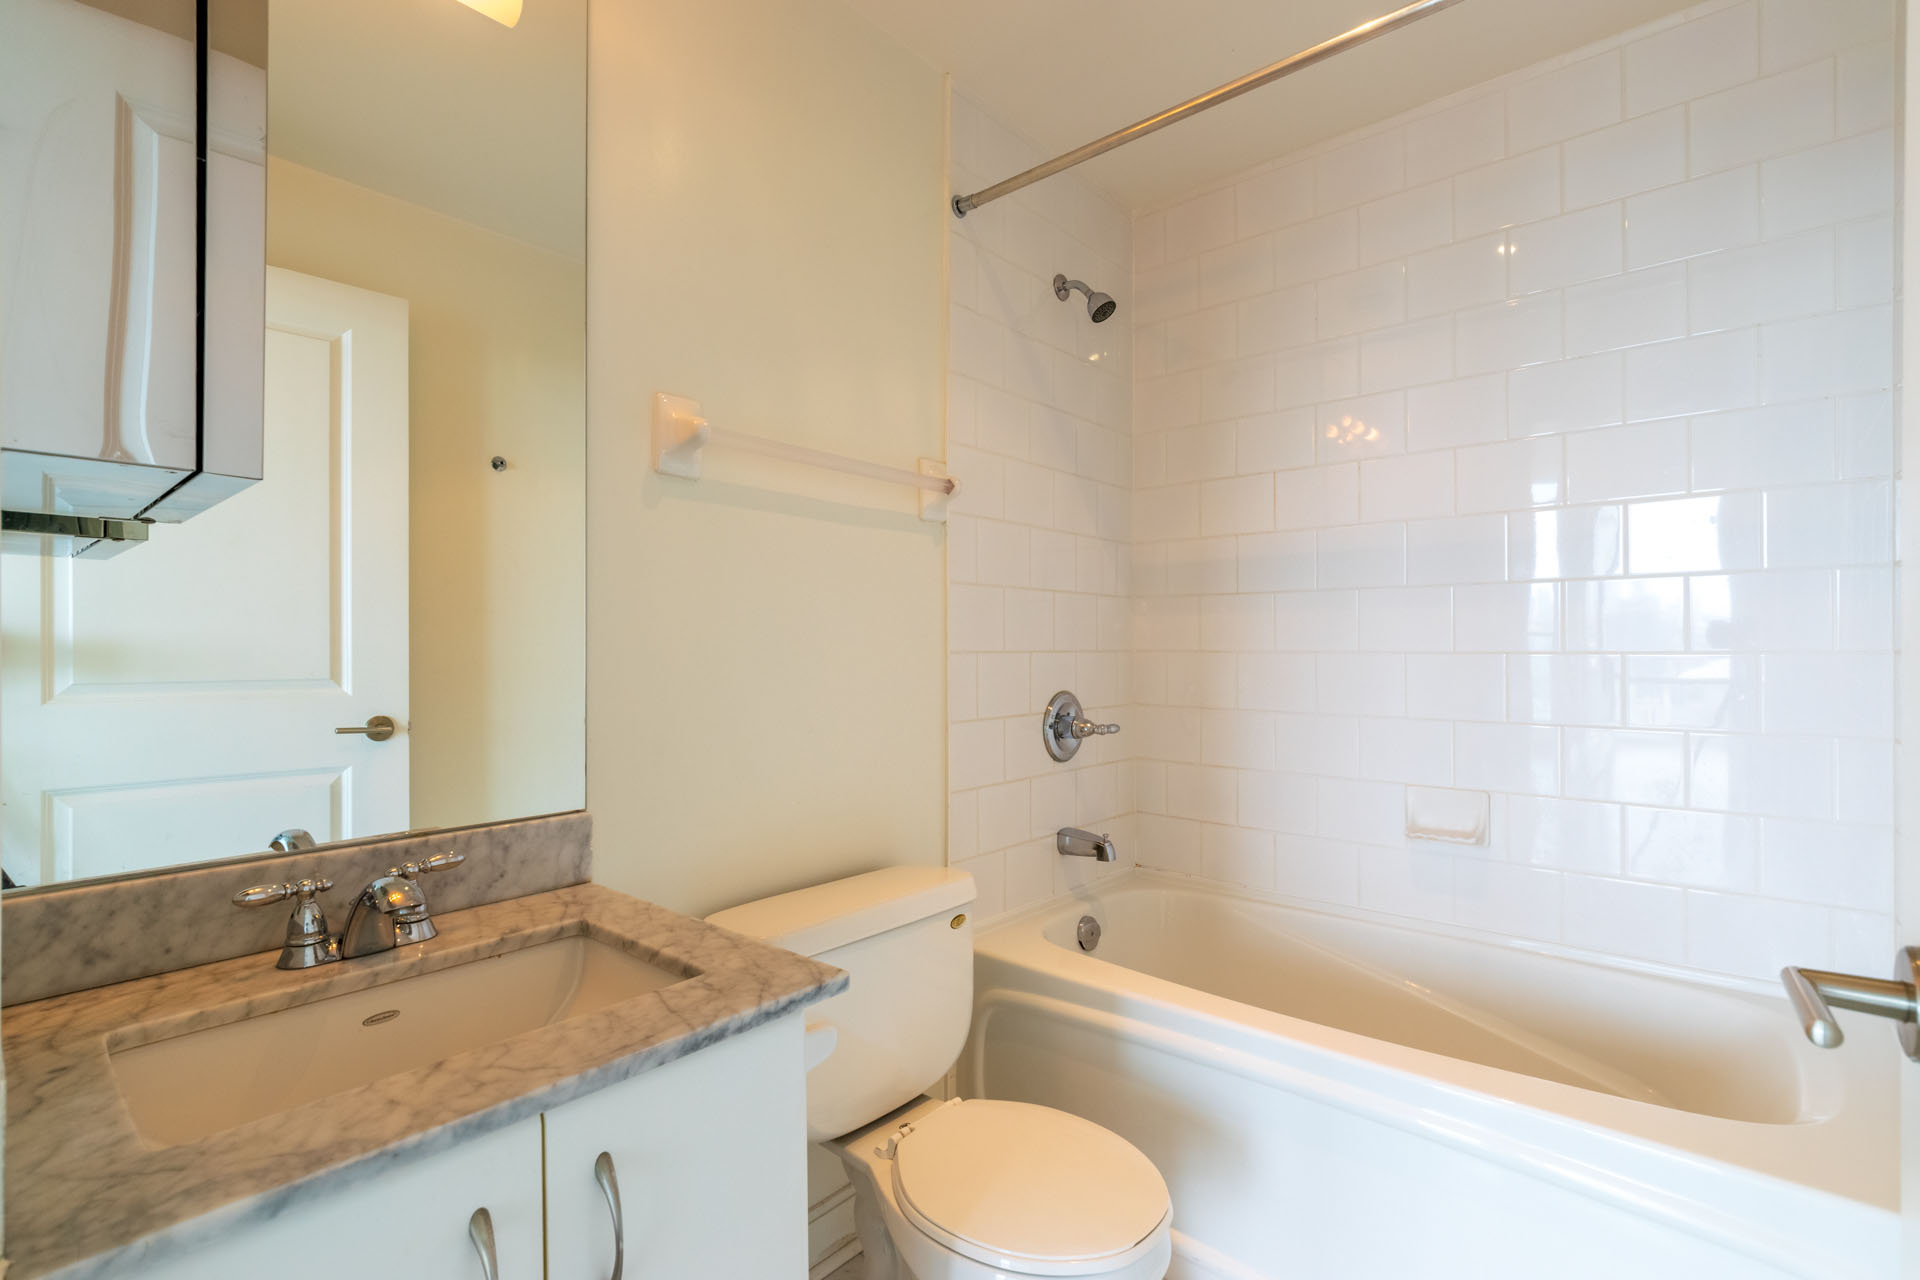 Suite for Rent in Downtown Toronto. Washroom, Large bathtub